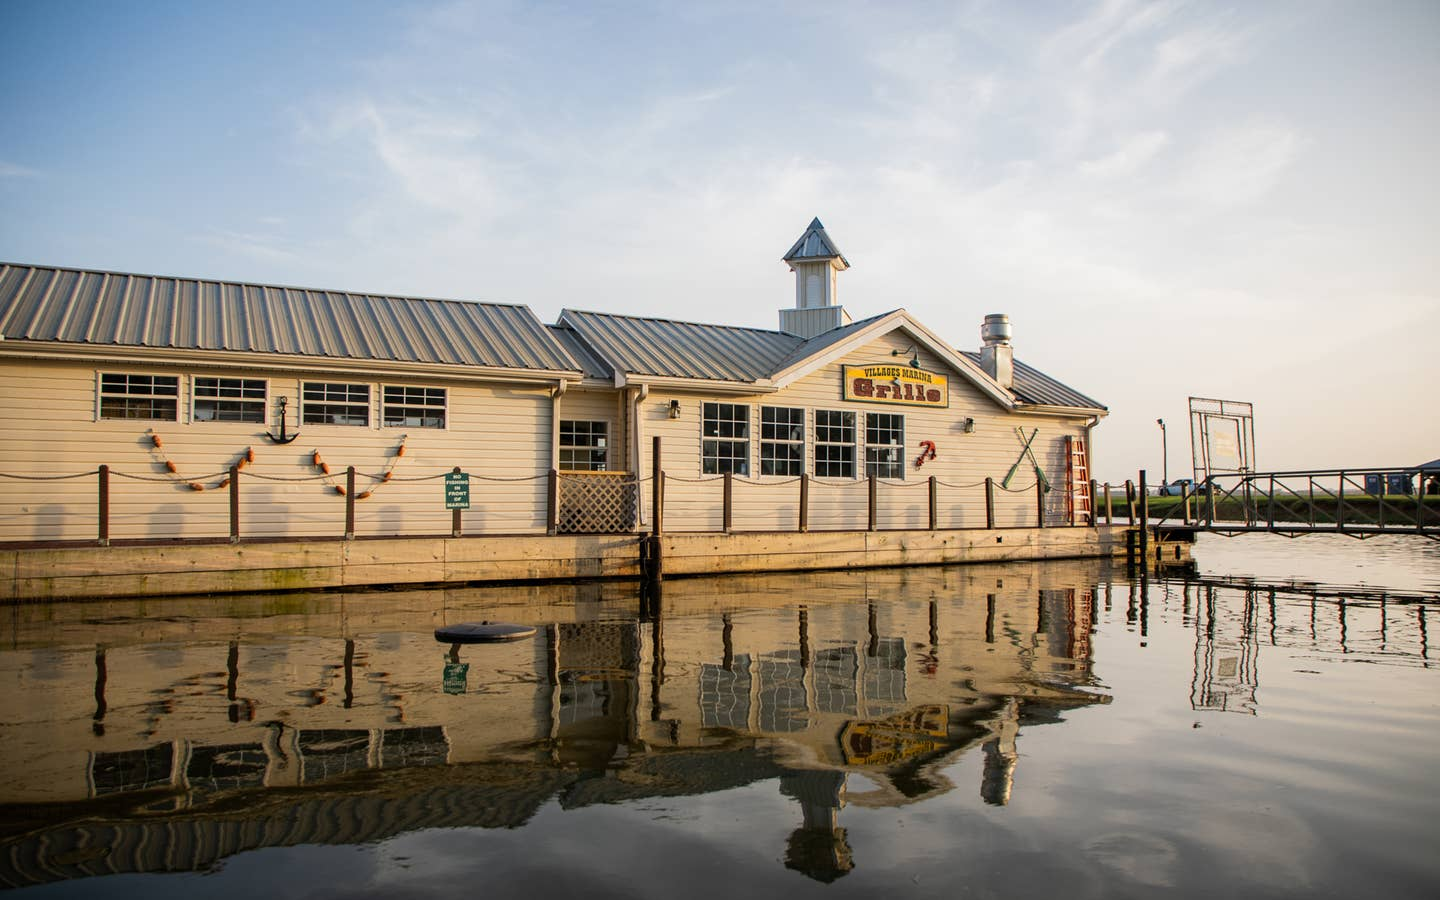 Harbour Grille and Marina at Villages Resort in Flint, Texas.